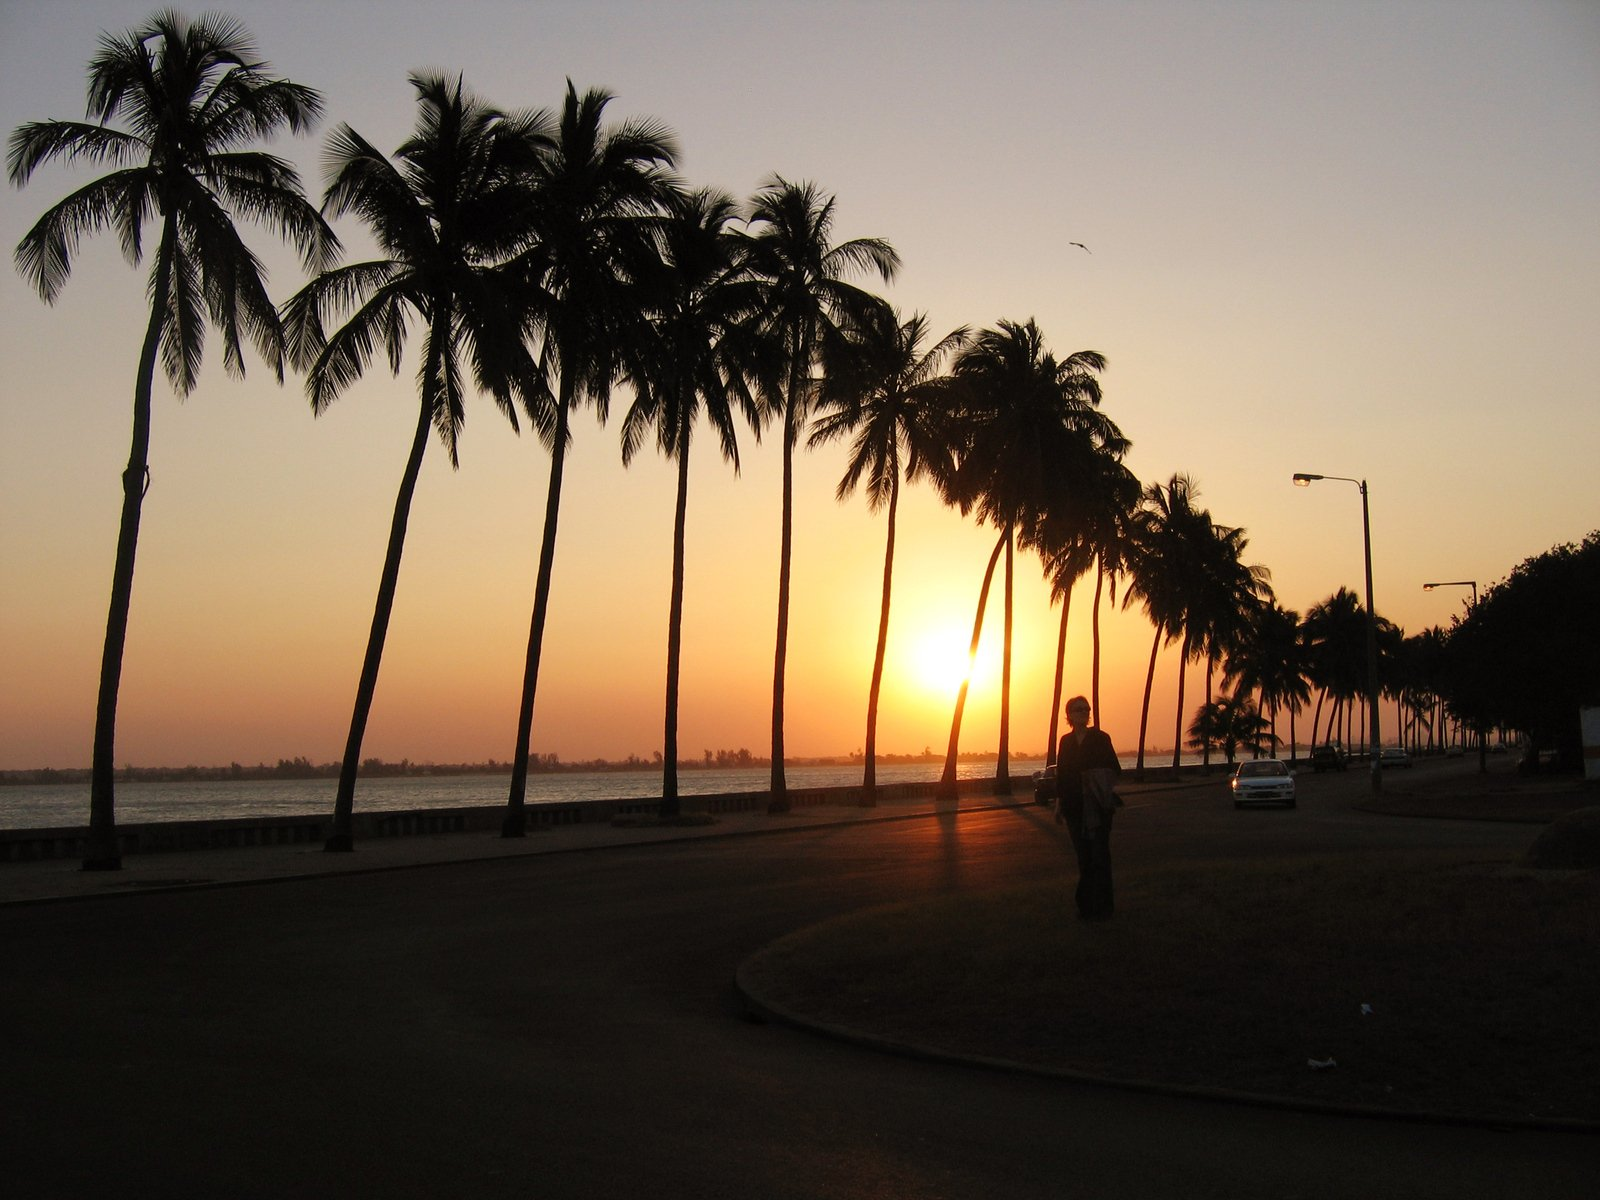 Palm trees along a street in Maputo at sunset